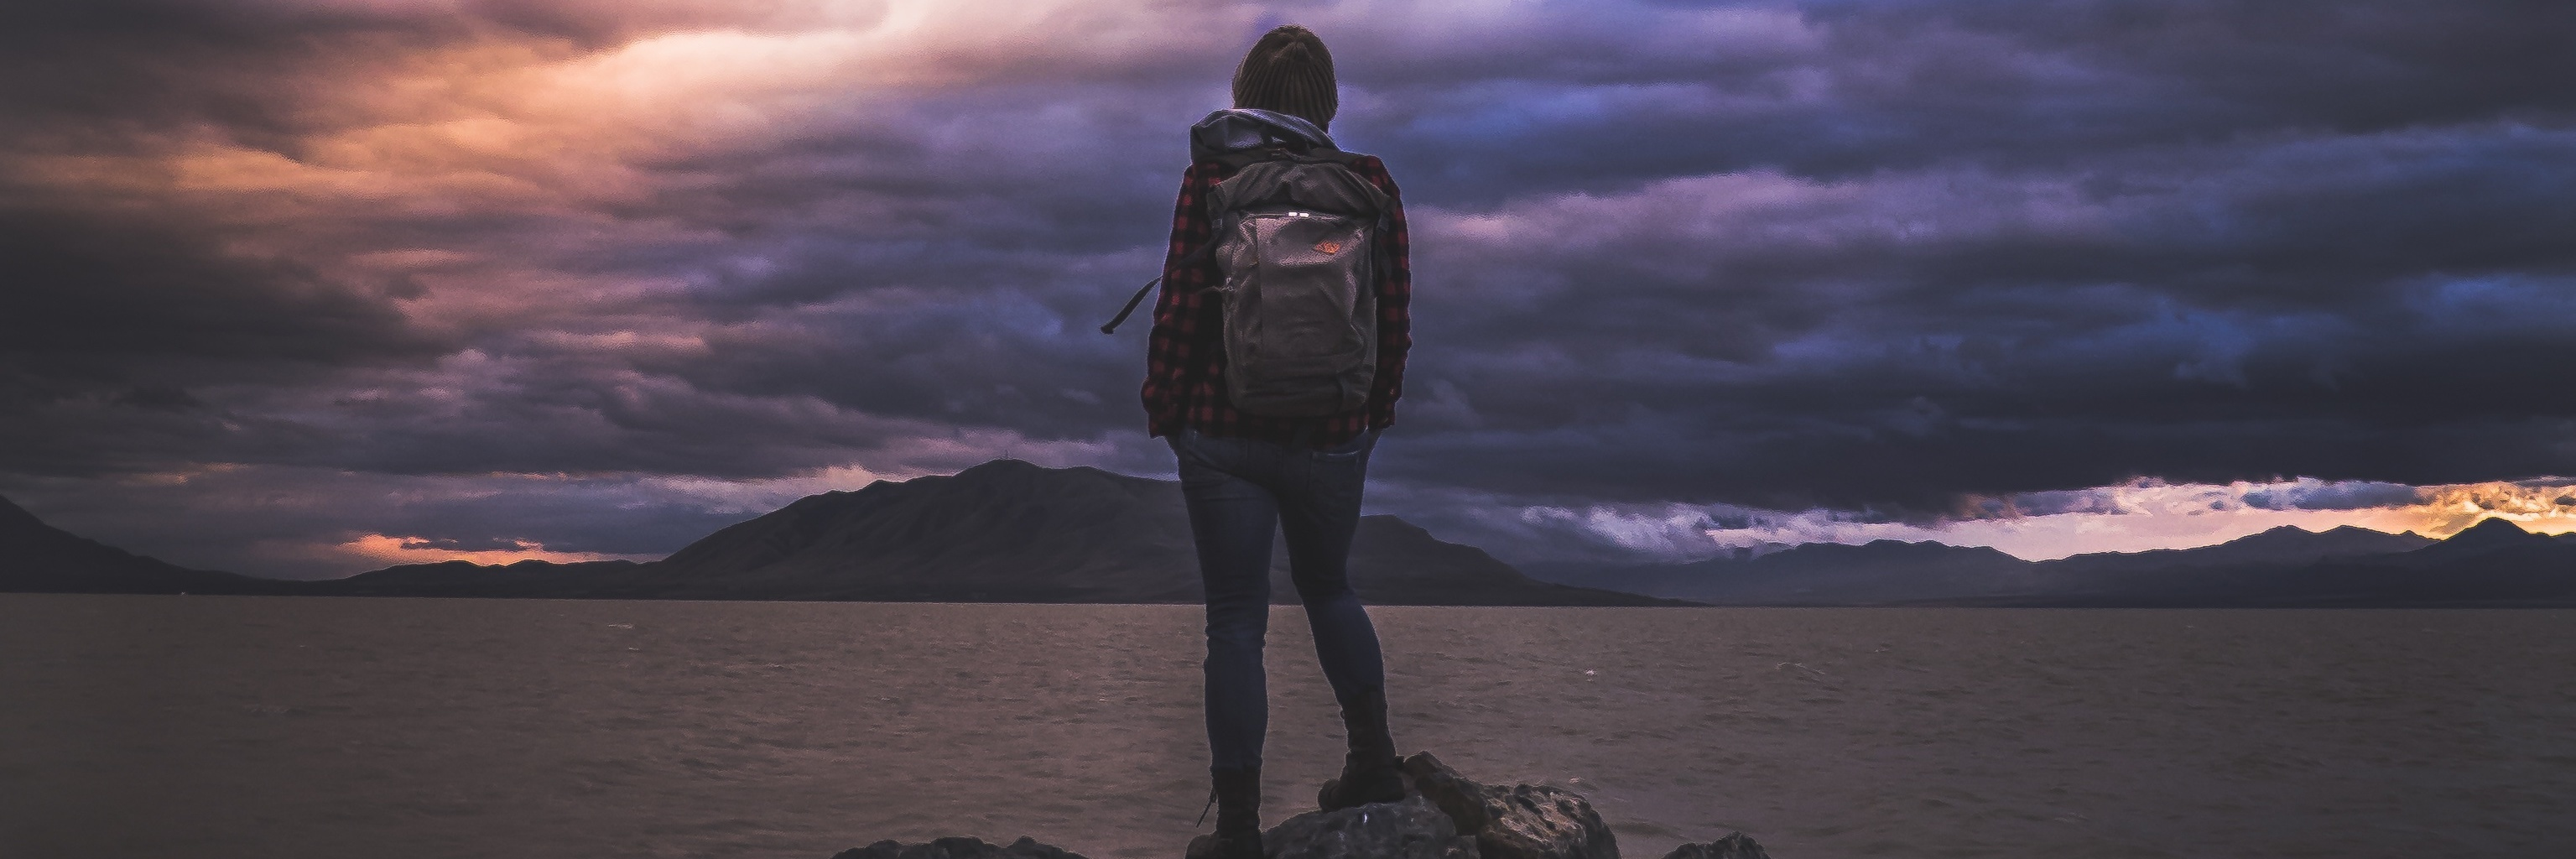 woman watching storm clouds at sunset over ocean while standing on rock